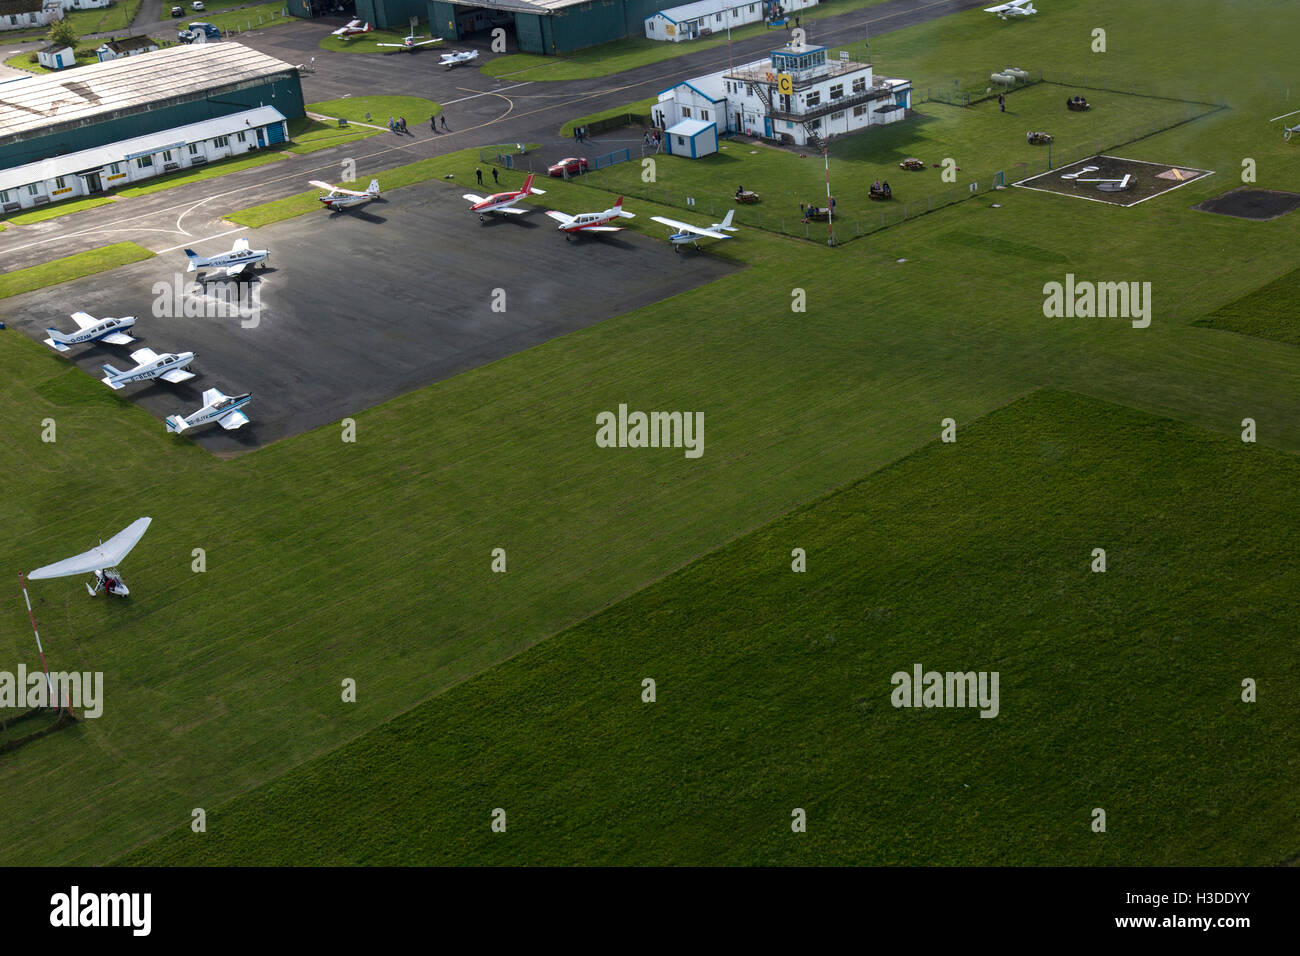 Wolverhampton Halfpenny Green in South Staffordshire, England. Aerial view showing control tower and parked aircraft. - Stock Image